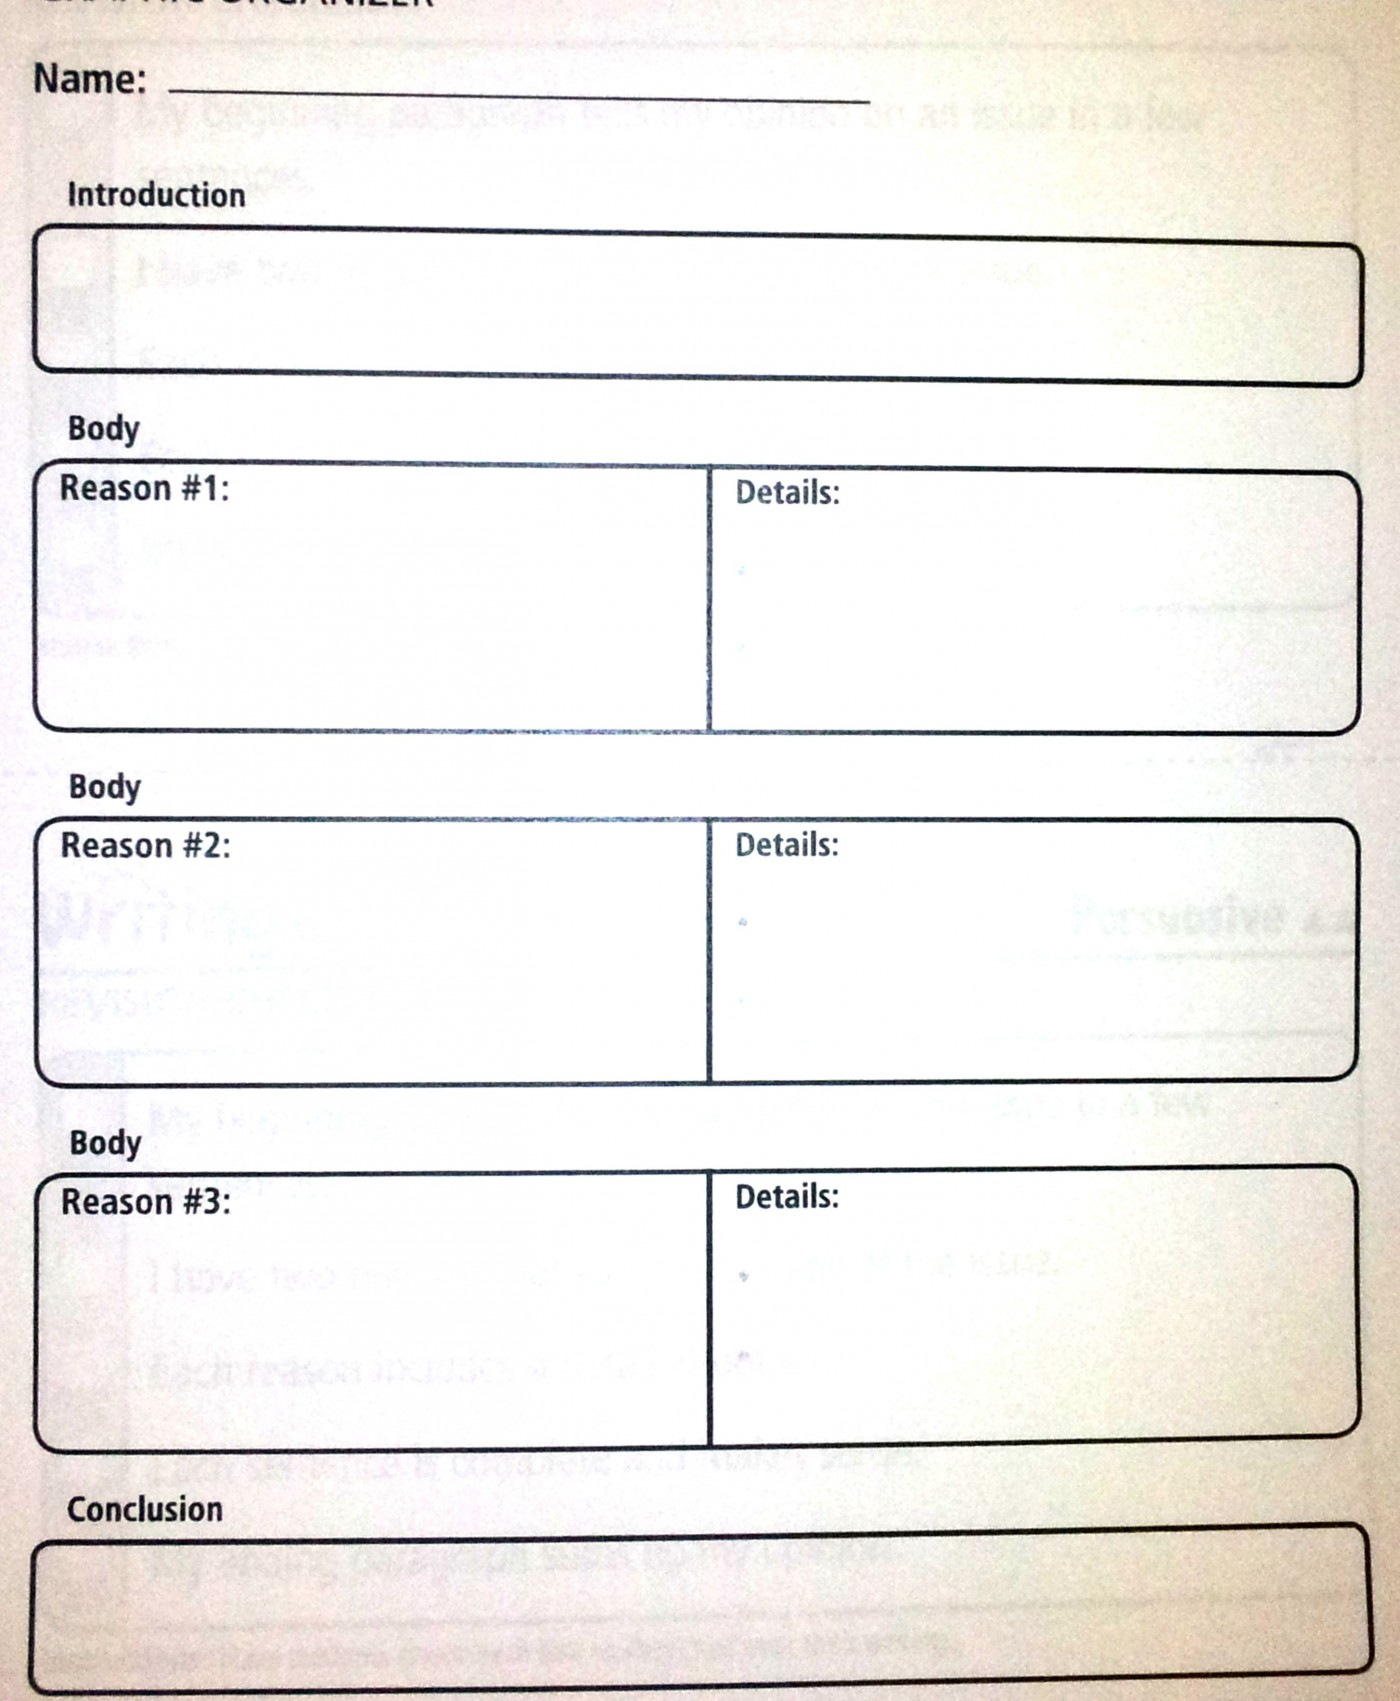 027 Essay Example Paragraph Outline Persuasive Graphic Organizer Complex Amazing 5 5th Grade High School Free Template 1400